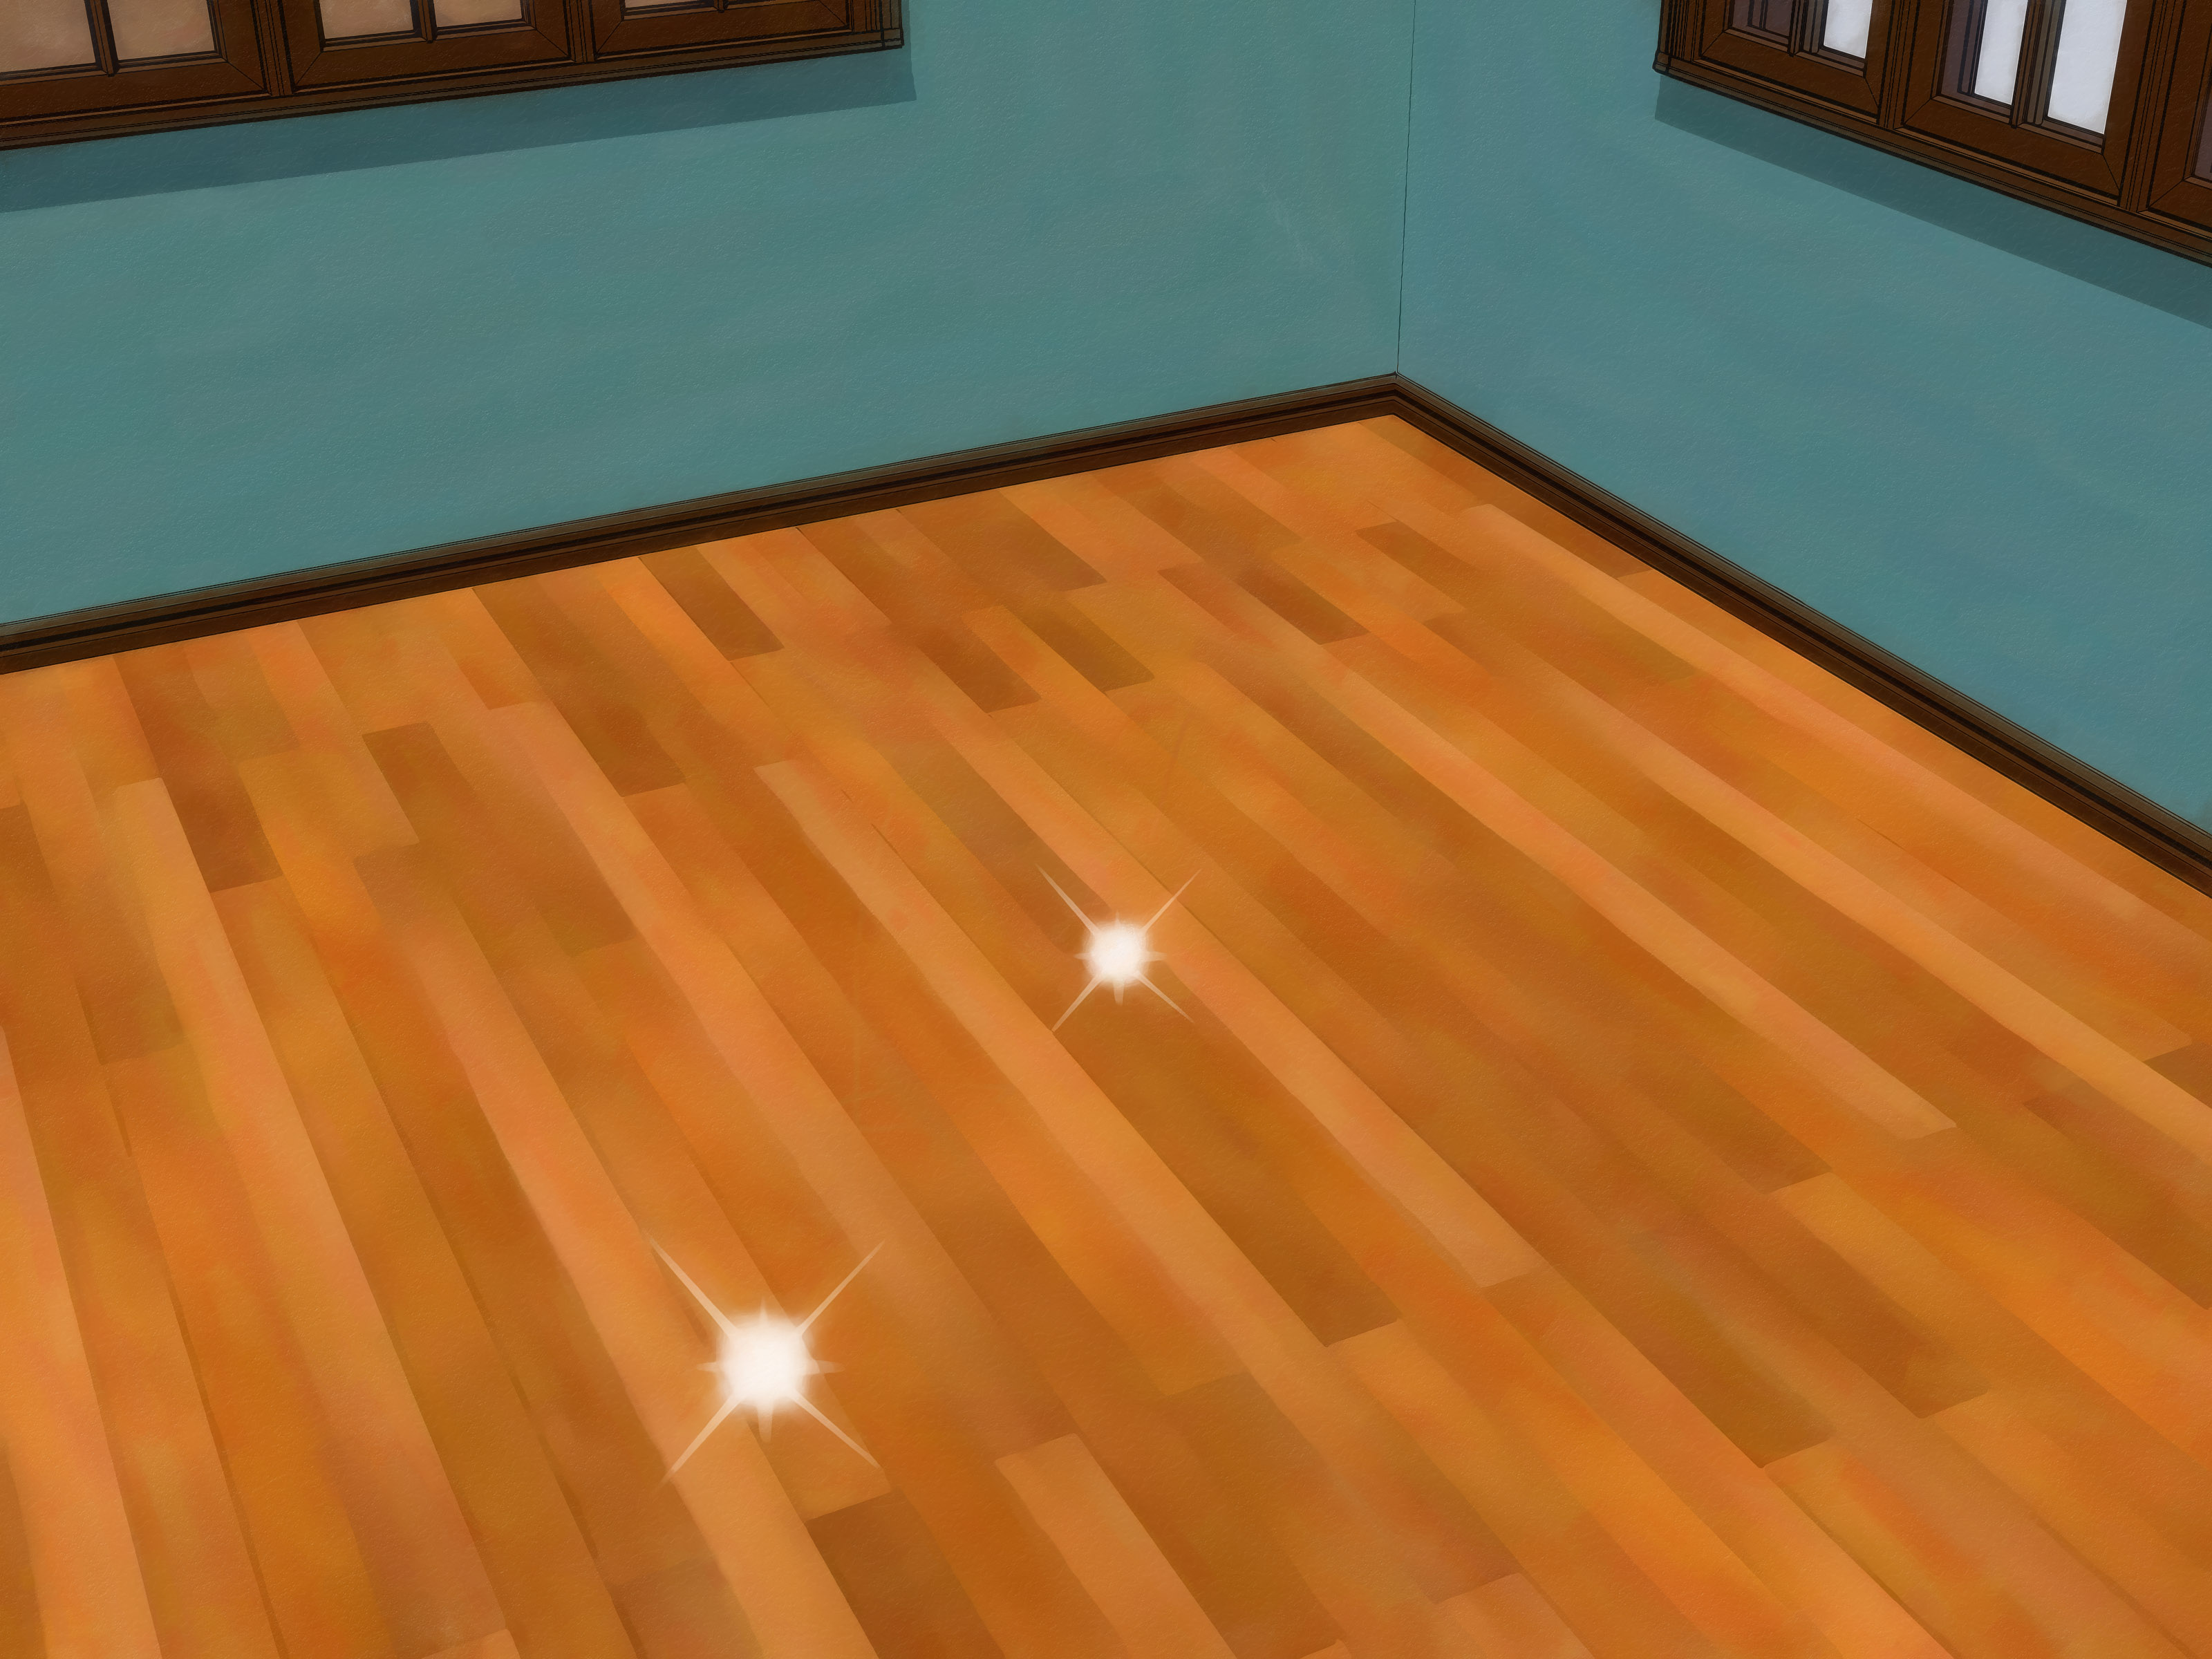 Bunning Floorboards How To Polish Wood Floors 11 Steps With Pictures Wikihow